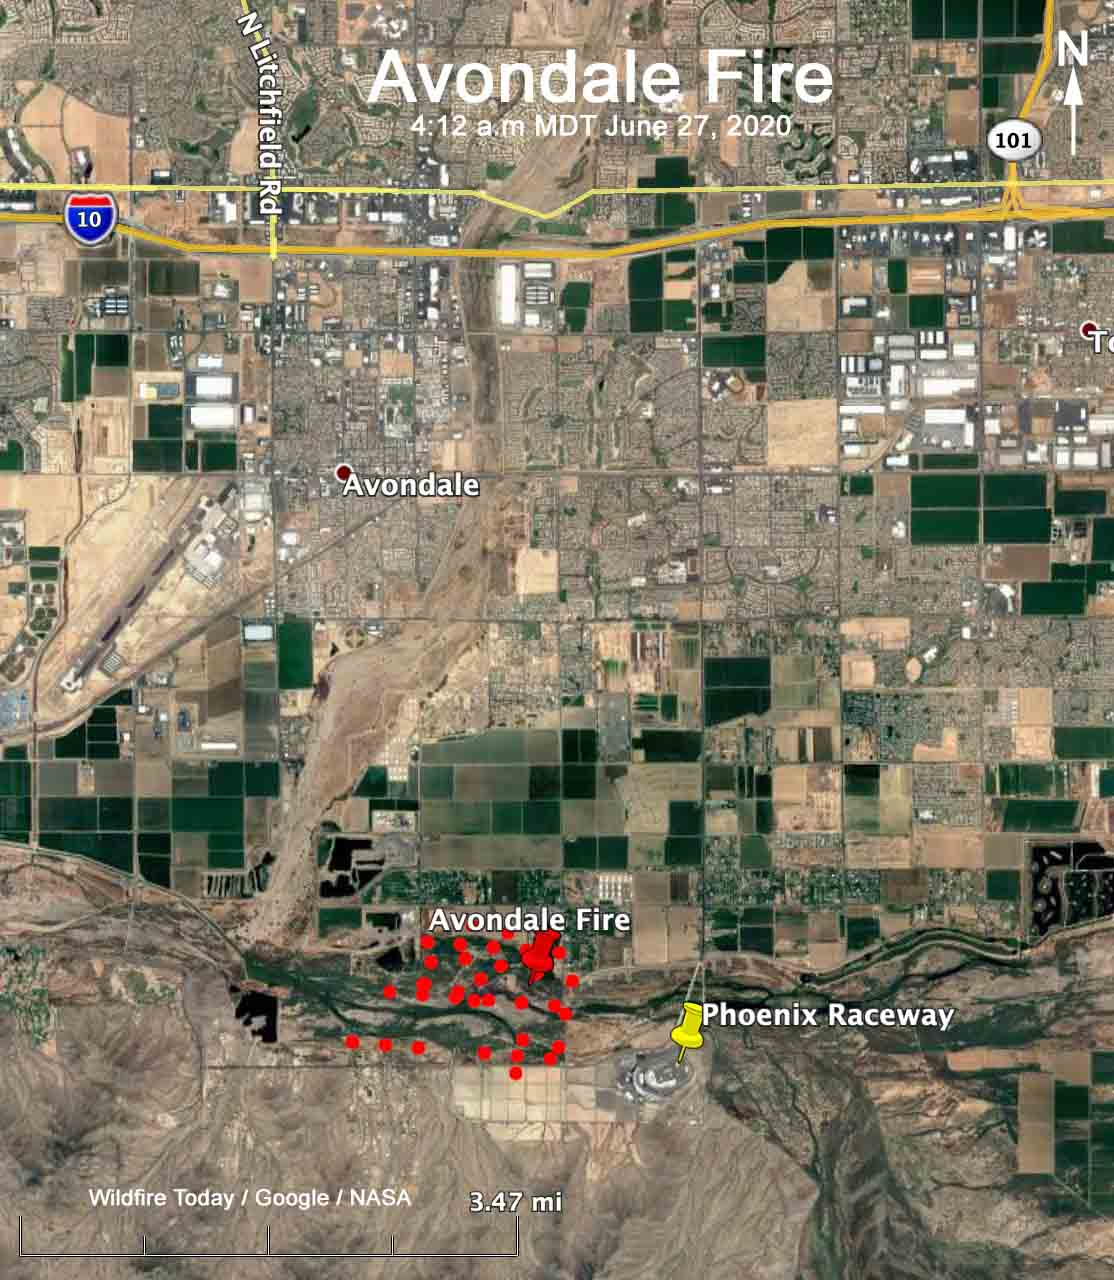 Avondale Fire Arizona Phoenix map